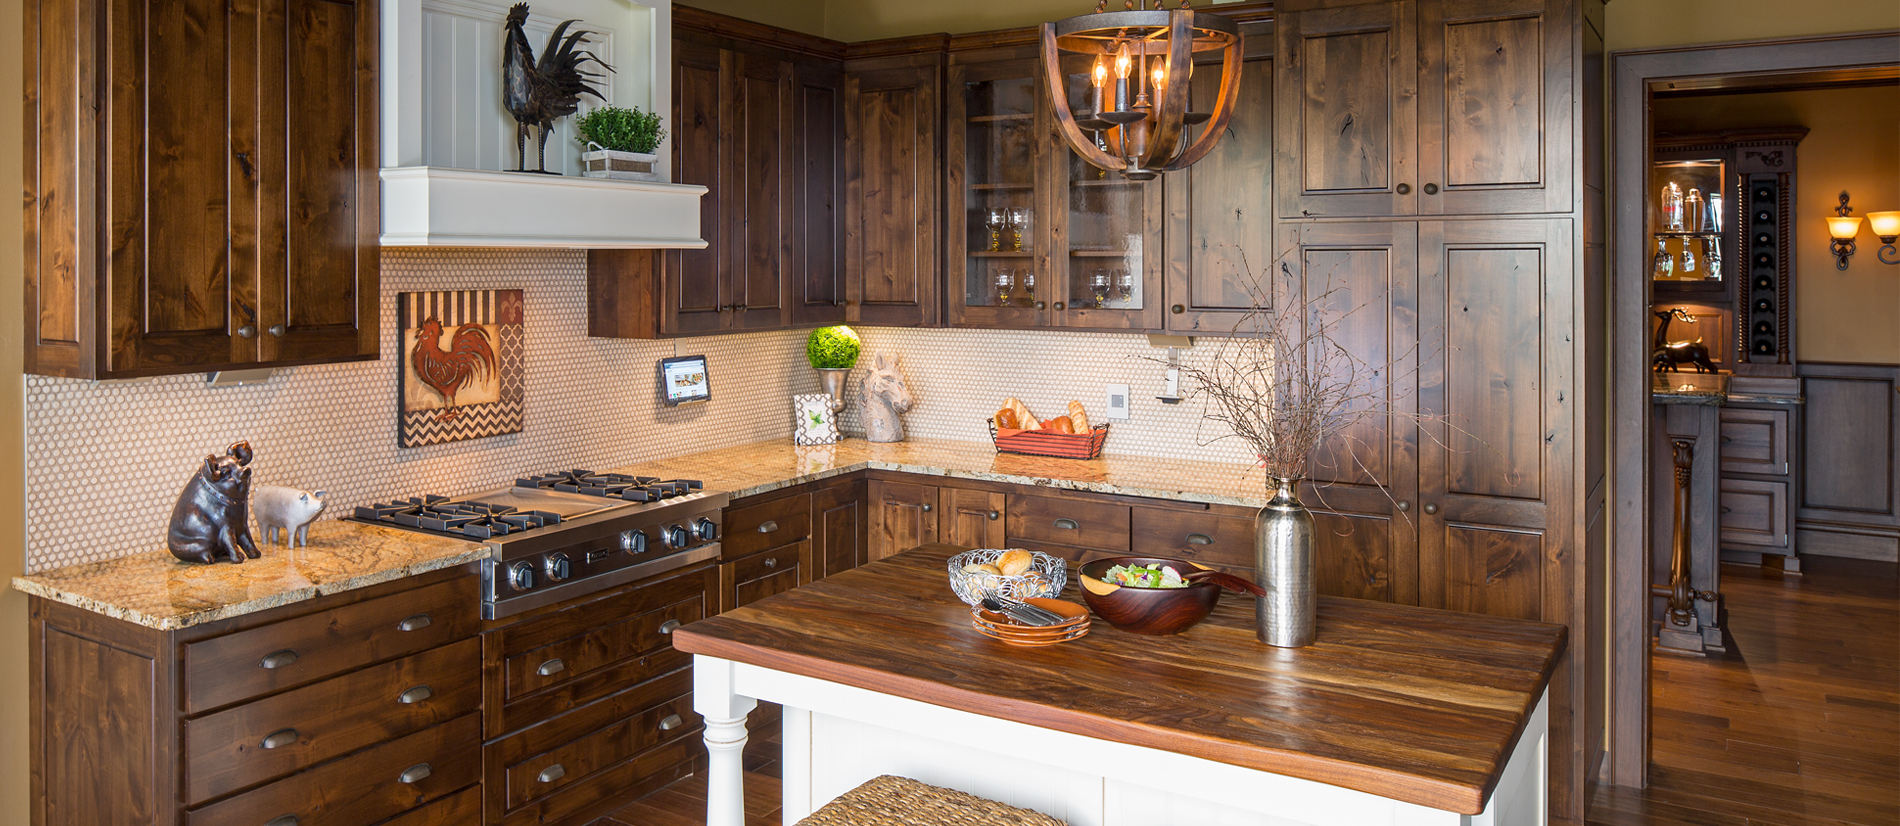 Northland Cabinets | Custom Cabinets, Kitchens, Home Theaters ...